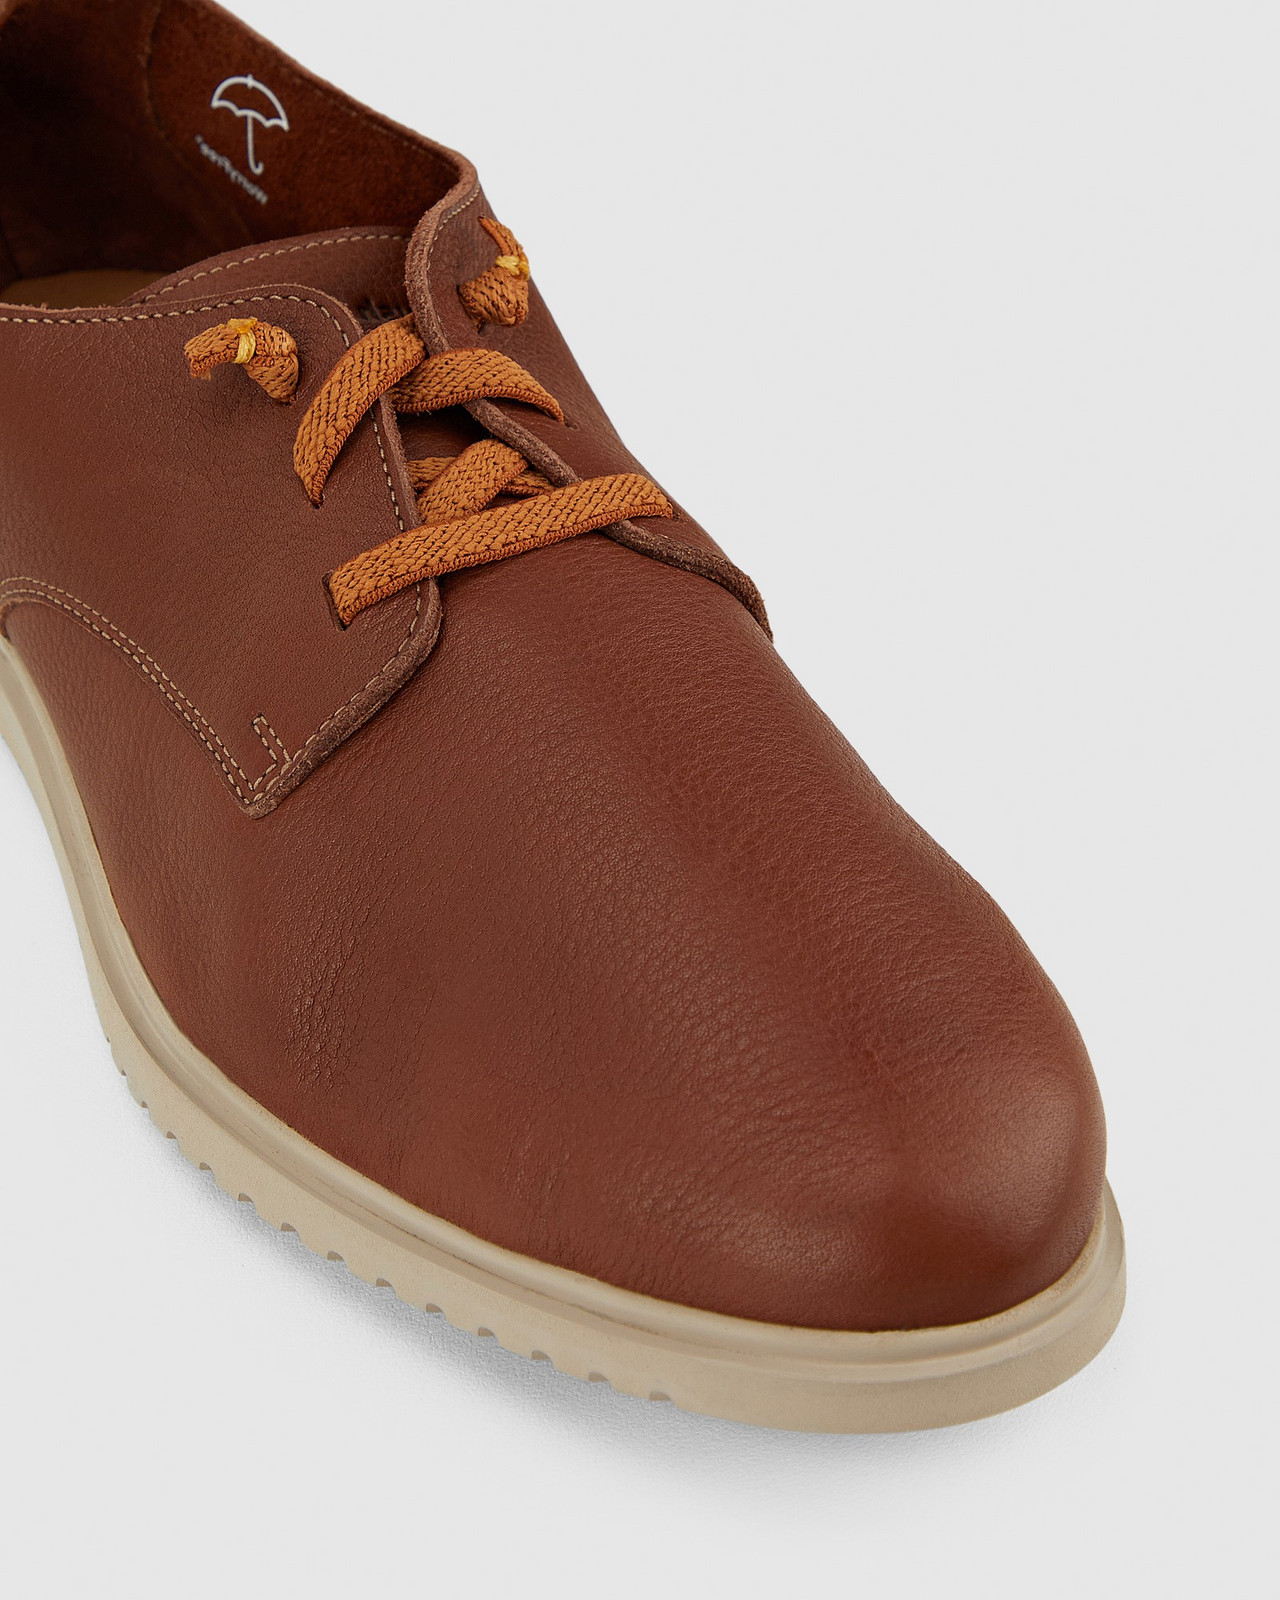 Hush Puppies  THE EVERYDAY LACEUP M Cognac Leather